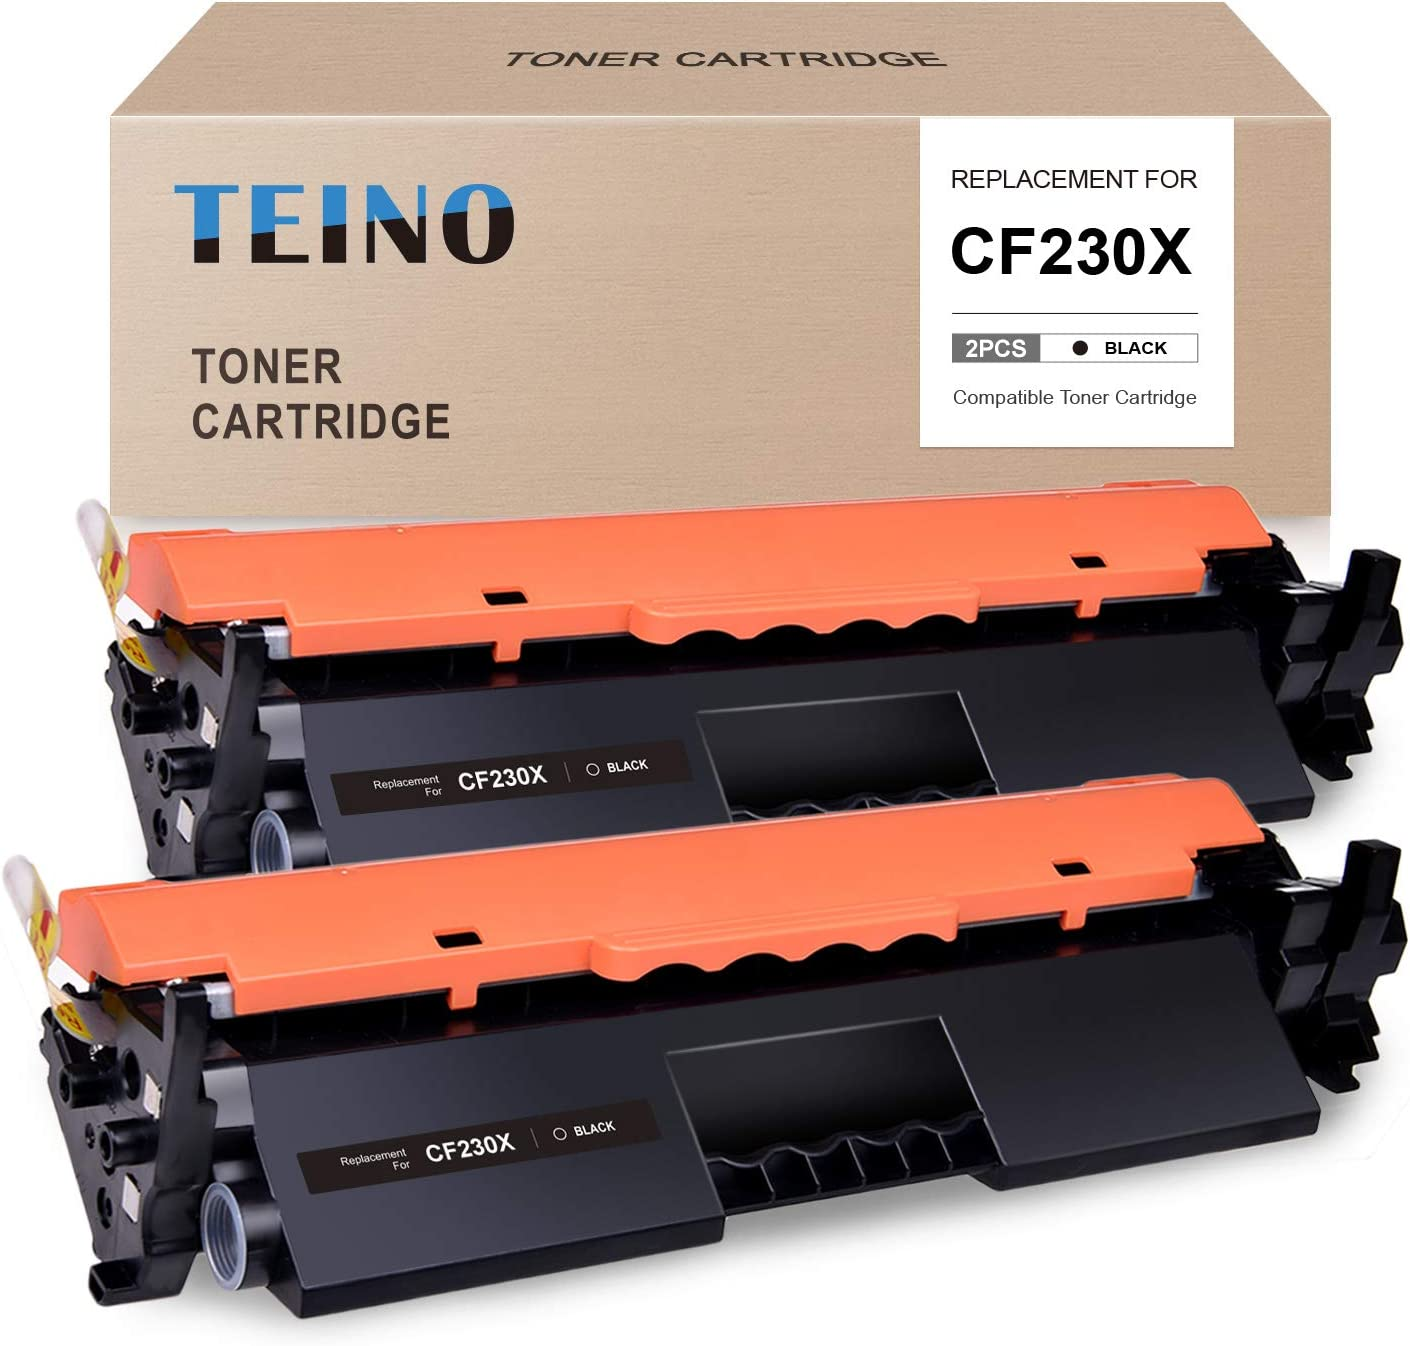 TEINO Compatible Toner Cartridge Replacement for HP 30X CF230X 30A CF230A use with HP Laserjet Pro MFP M227fdw M227fdn M227d Laserjet Pro M203dw M203dn M203d (Black, 2-Pack)